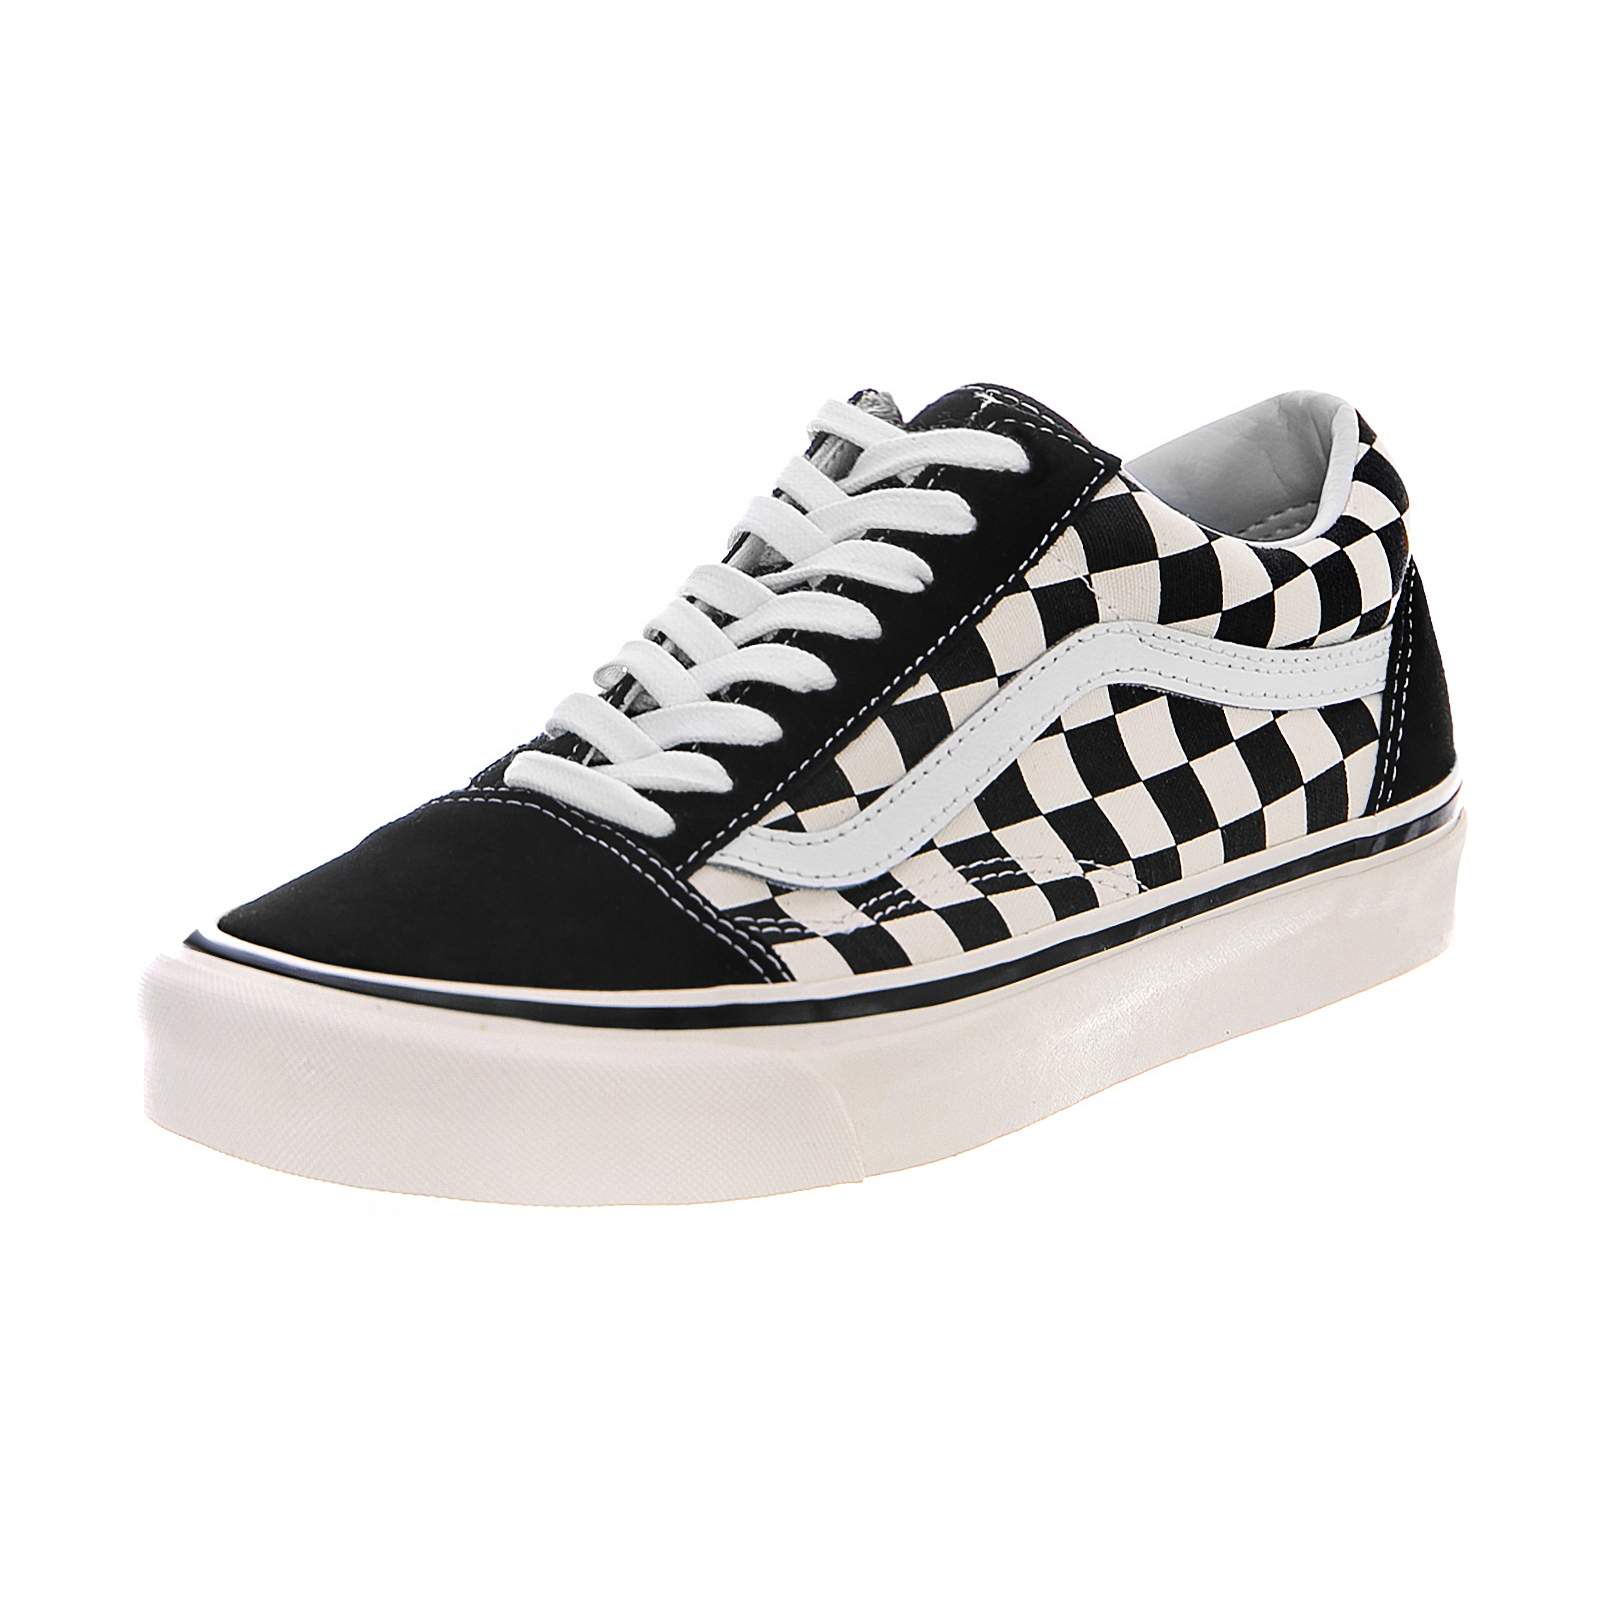 Vans Sneakers Unisex Old Skool 36 DX (Anaheim Factory) Black ... 3fe515ceb